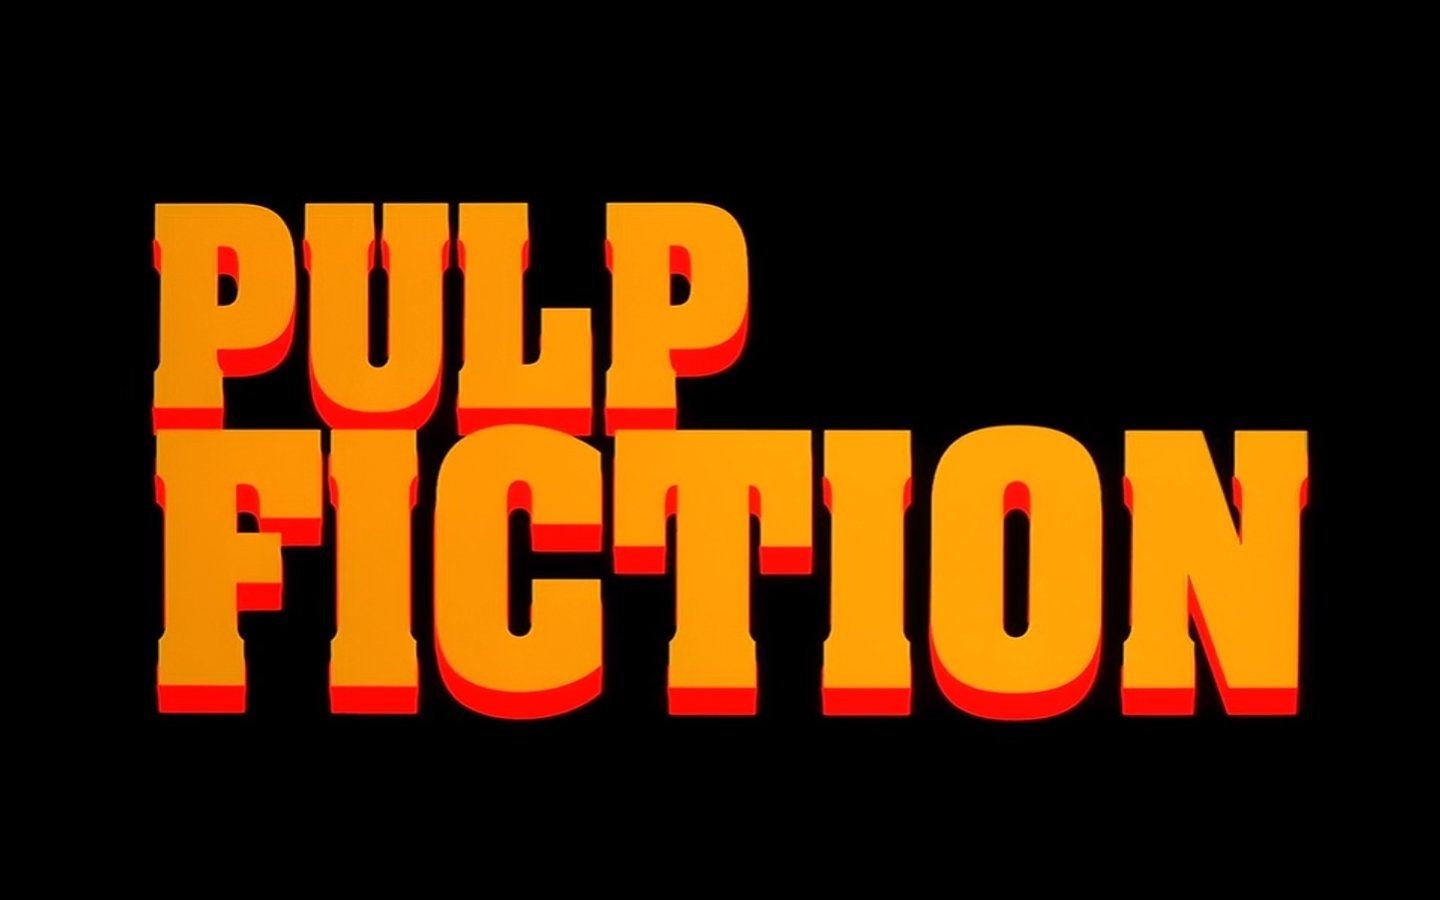 Pulp Fiction Wallpaper And Background Image